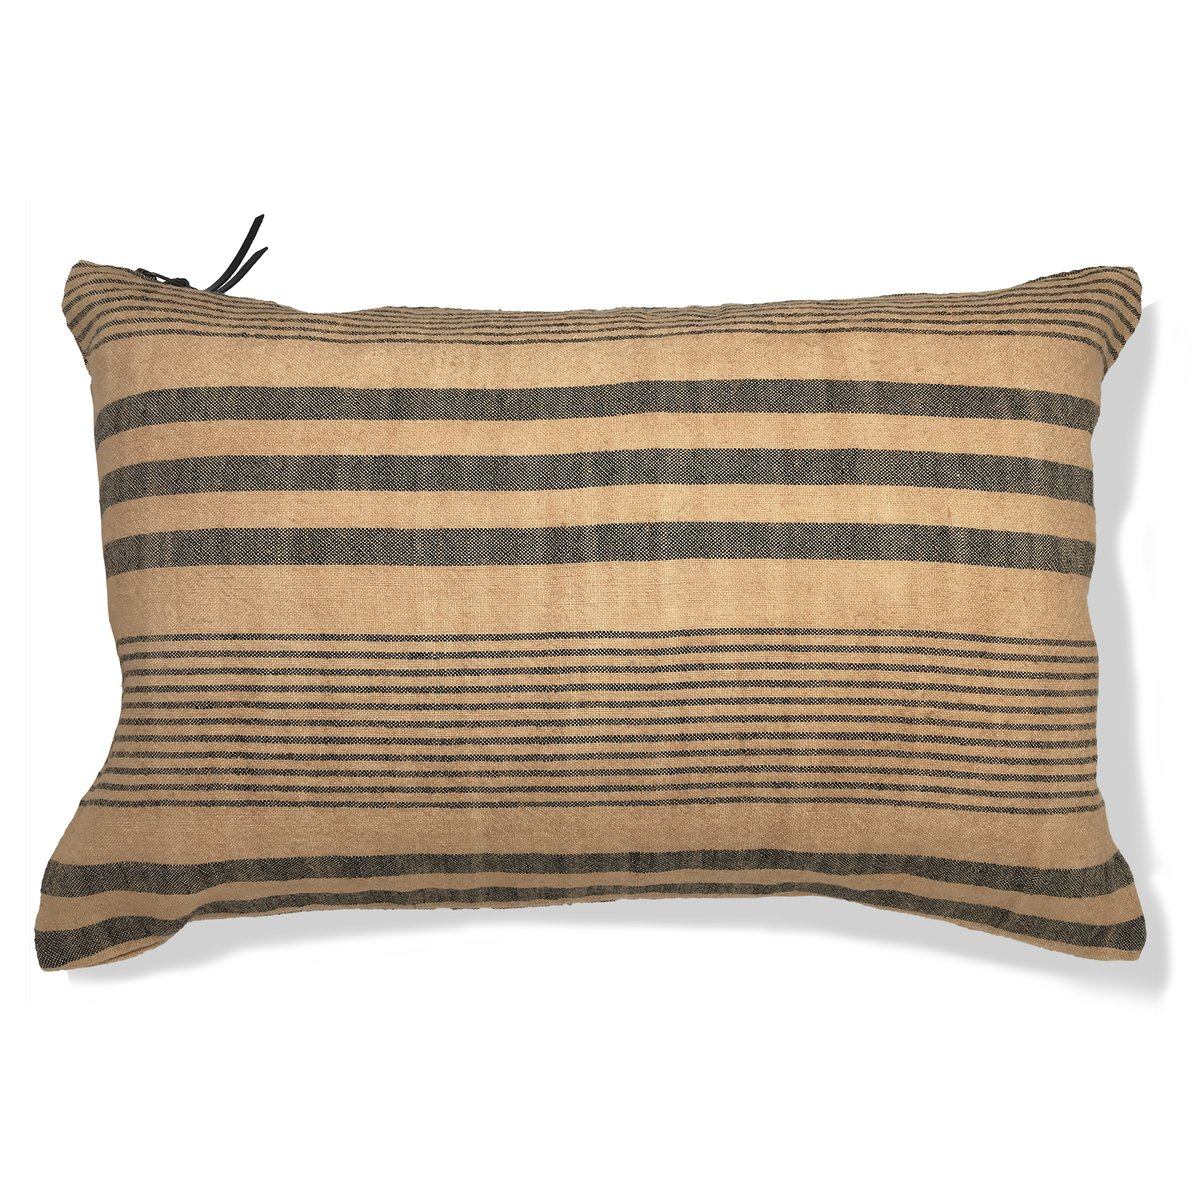 CALIFORNIA 1960  Coussin en lin pur lavé  Stripes chameau 40x60 (photo)